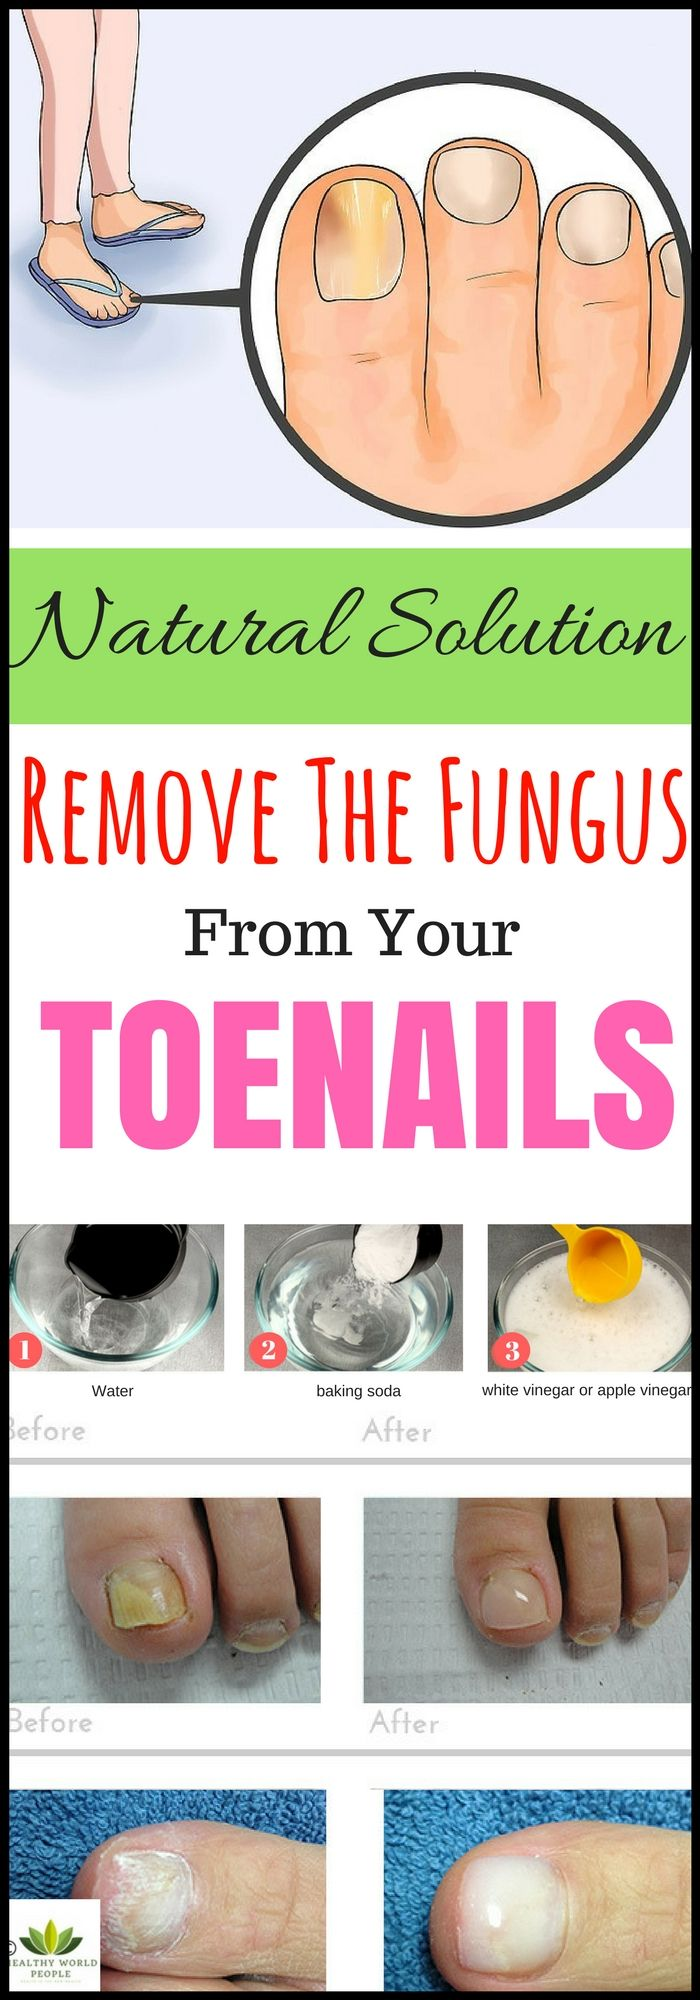 The fungi infections can appear anywhere on the body. It can appear in the body or attack it, usually on toenails, fingernails or skin under nails.